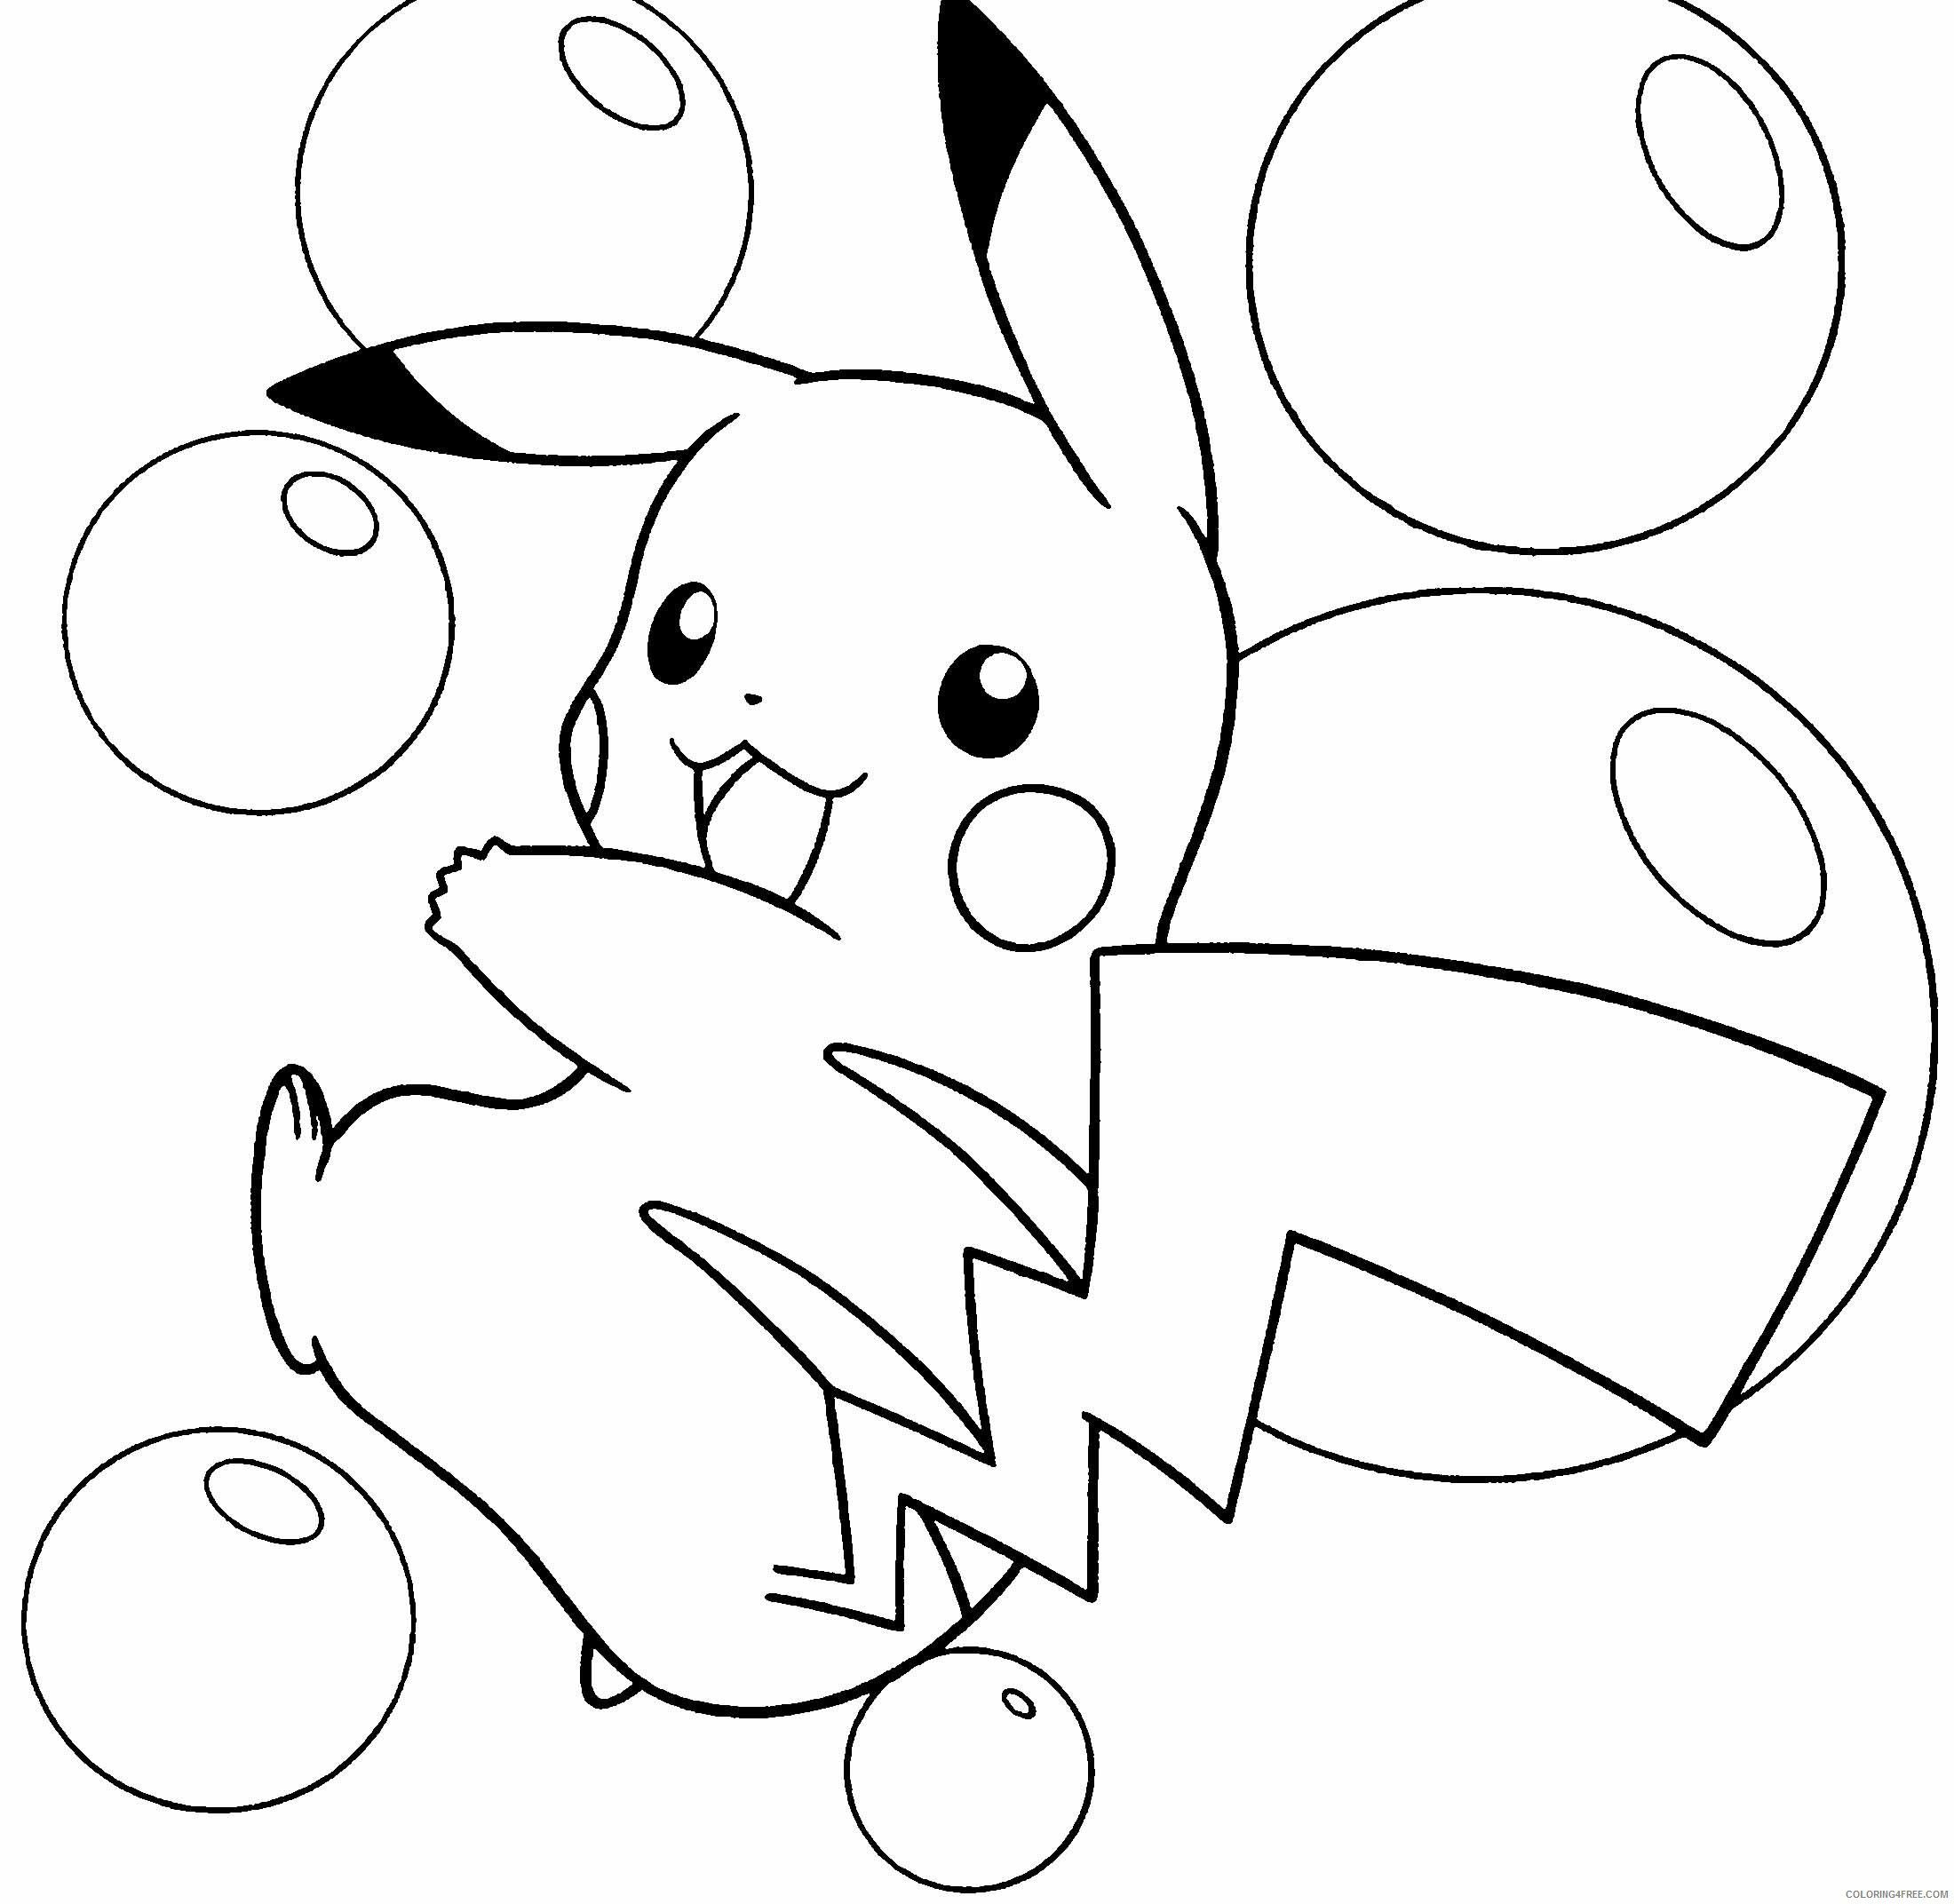 Coloring Pages Pikachu And Friends From The Thousand Photographs Online With Regards To Colorin Pikachu Coloring Page Pokemon Coloring Pokemon Coloring Pages